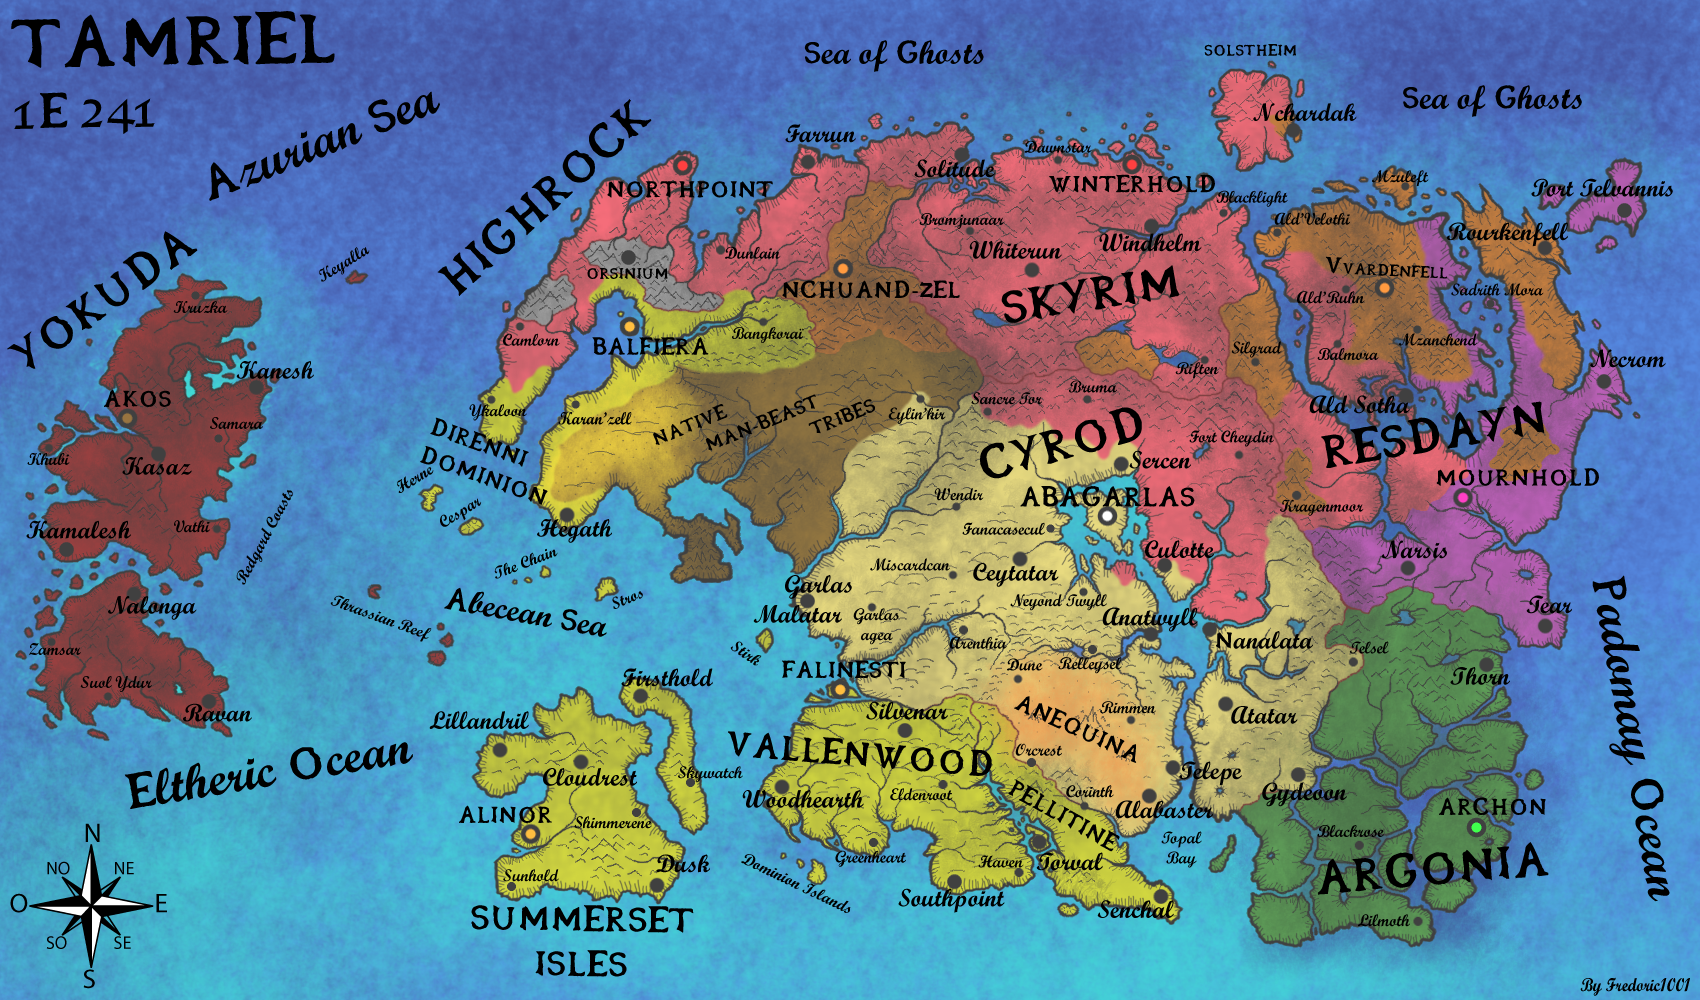 Geopolitical map of tamriel in 1e241 by fredoric1001 on deviantart